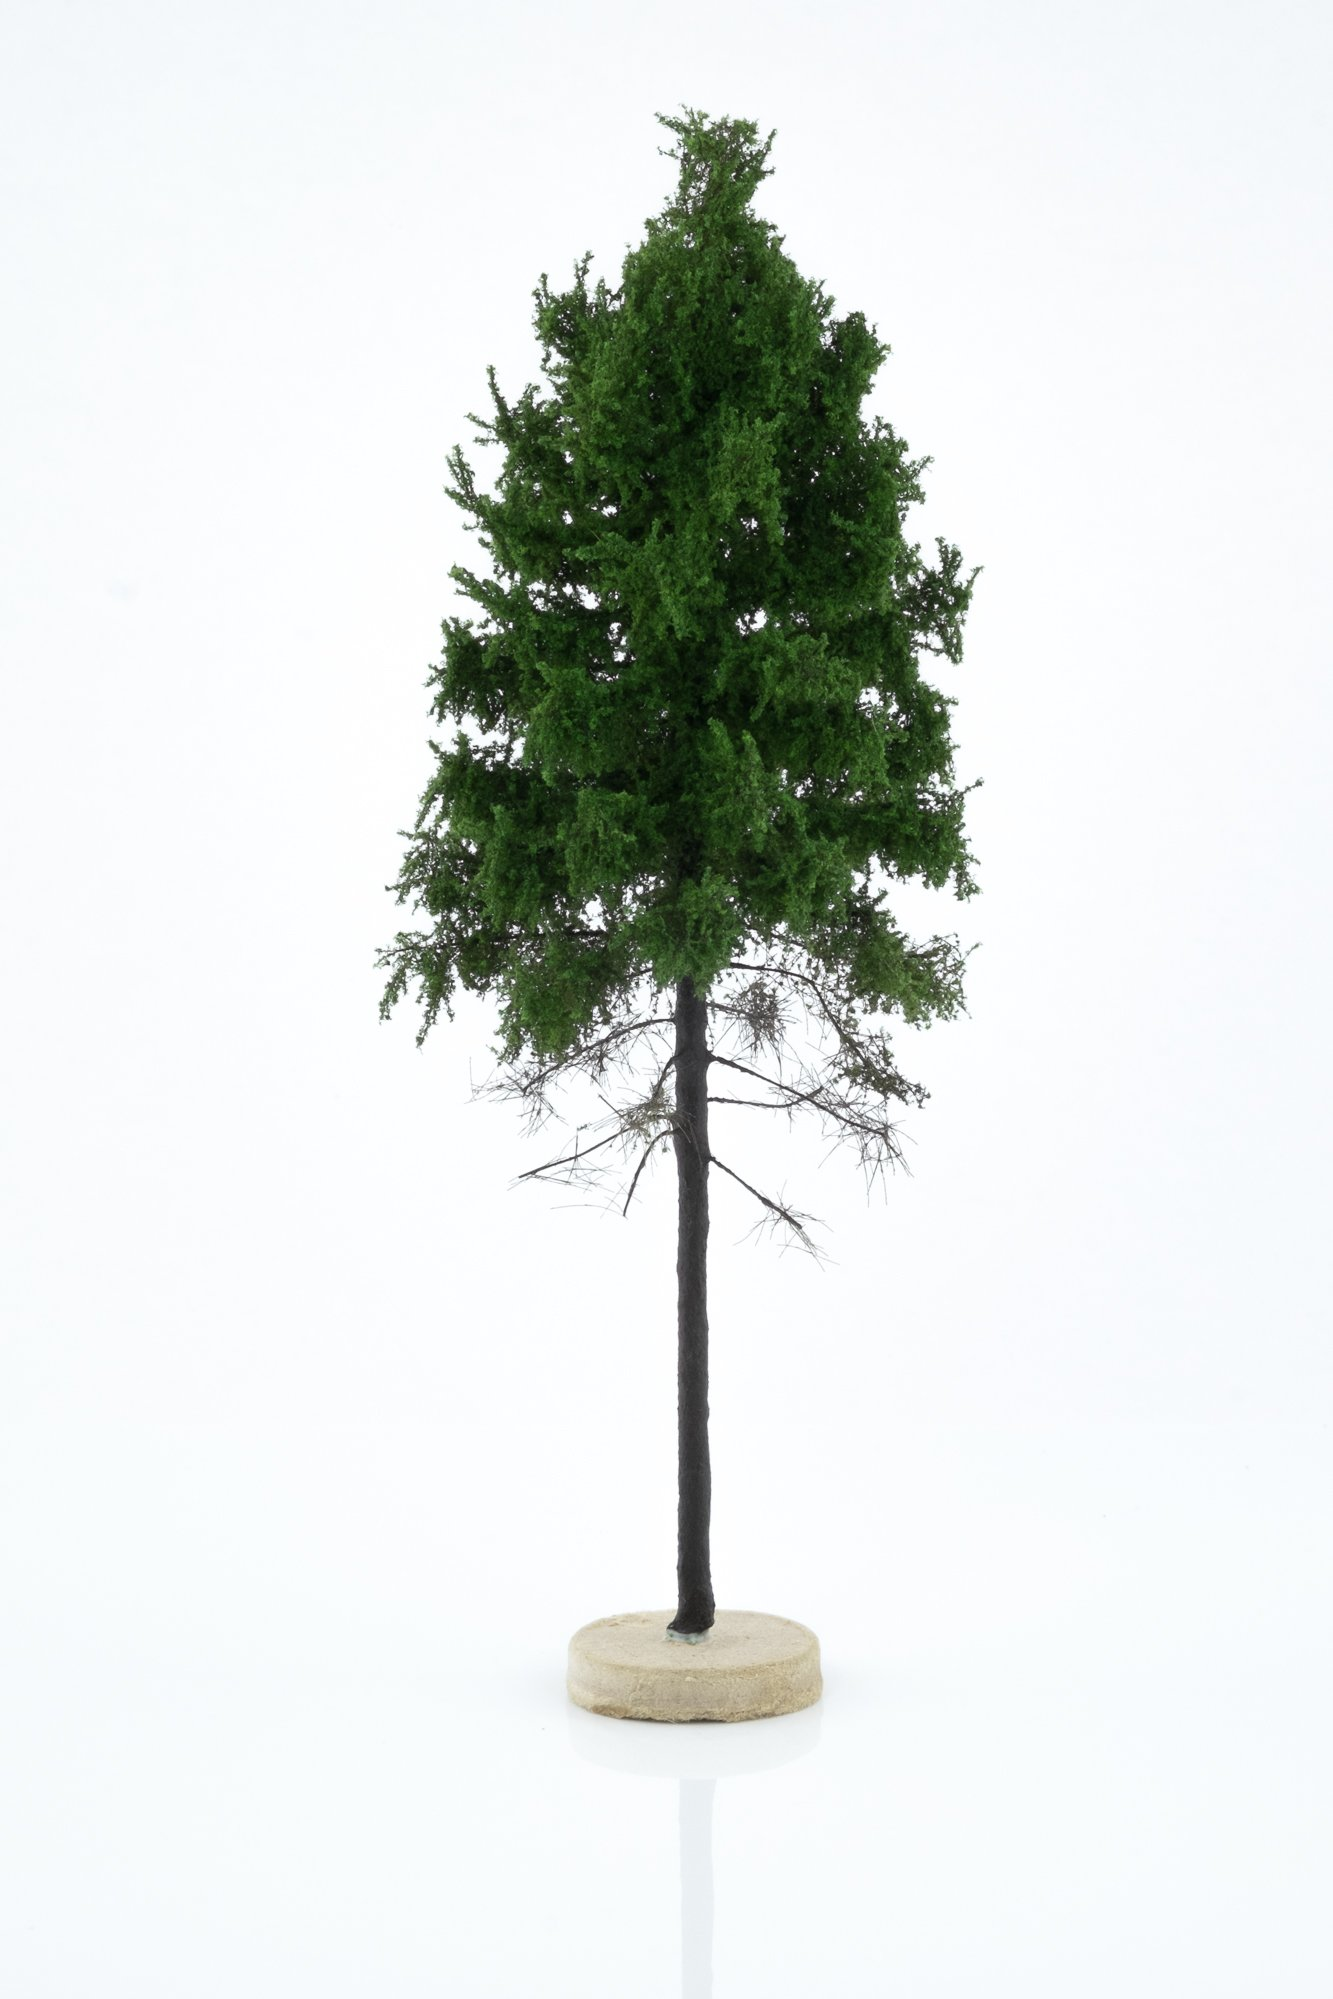 Hand-made, green, forest larch tree model. Size between 18 and 20 cm. Made from high quality model supplies by Primo Models.